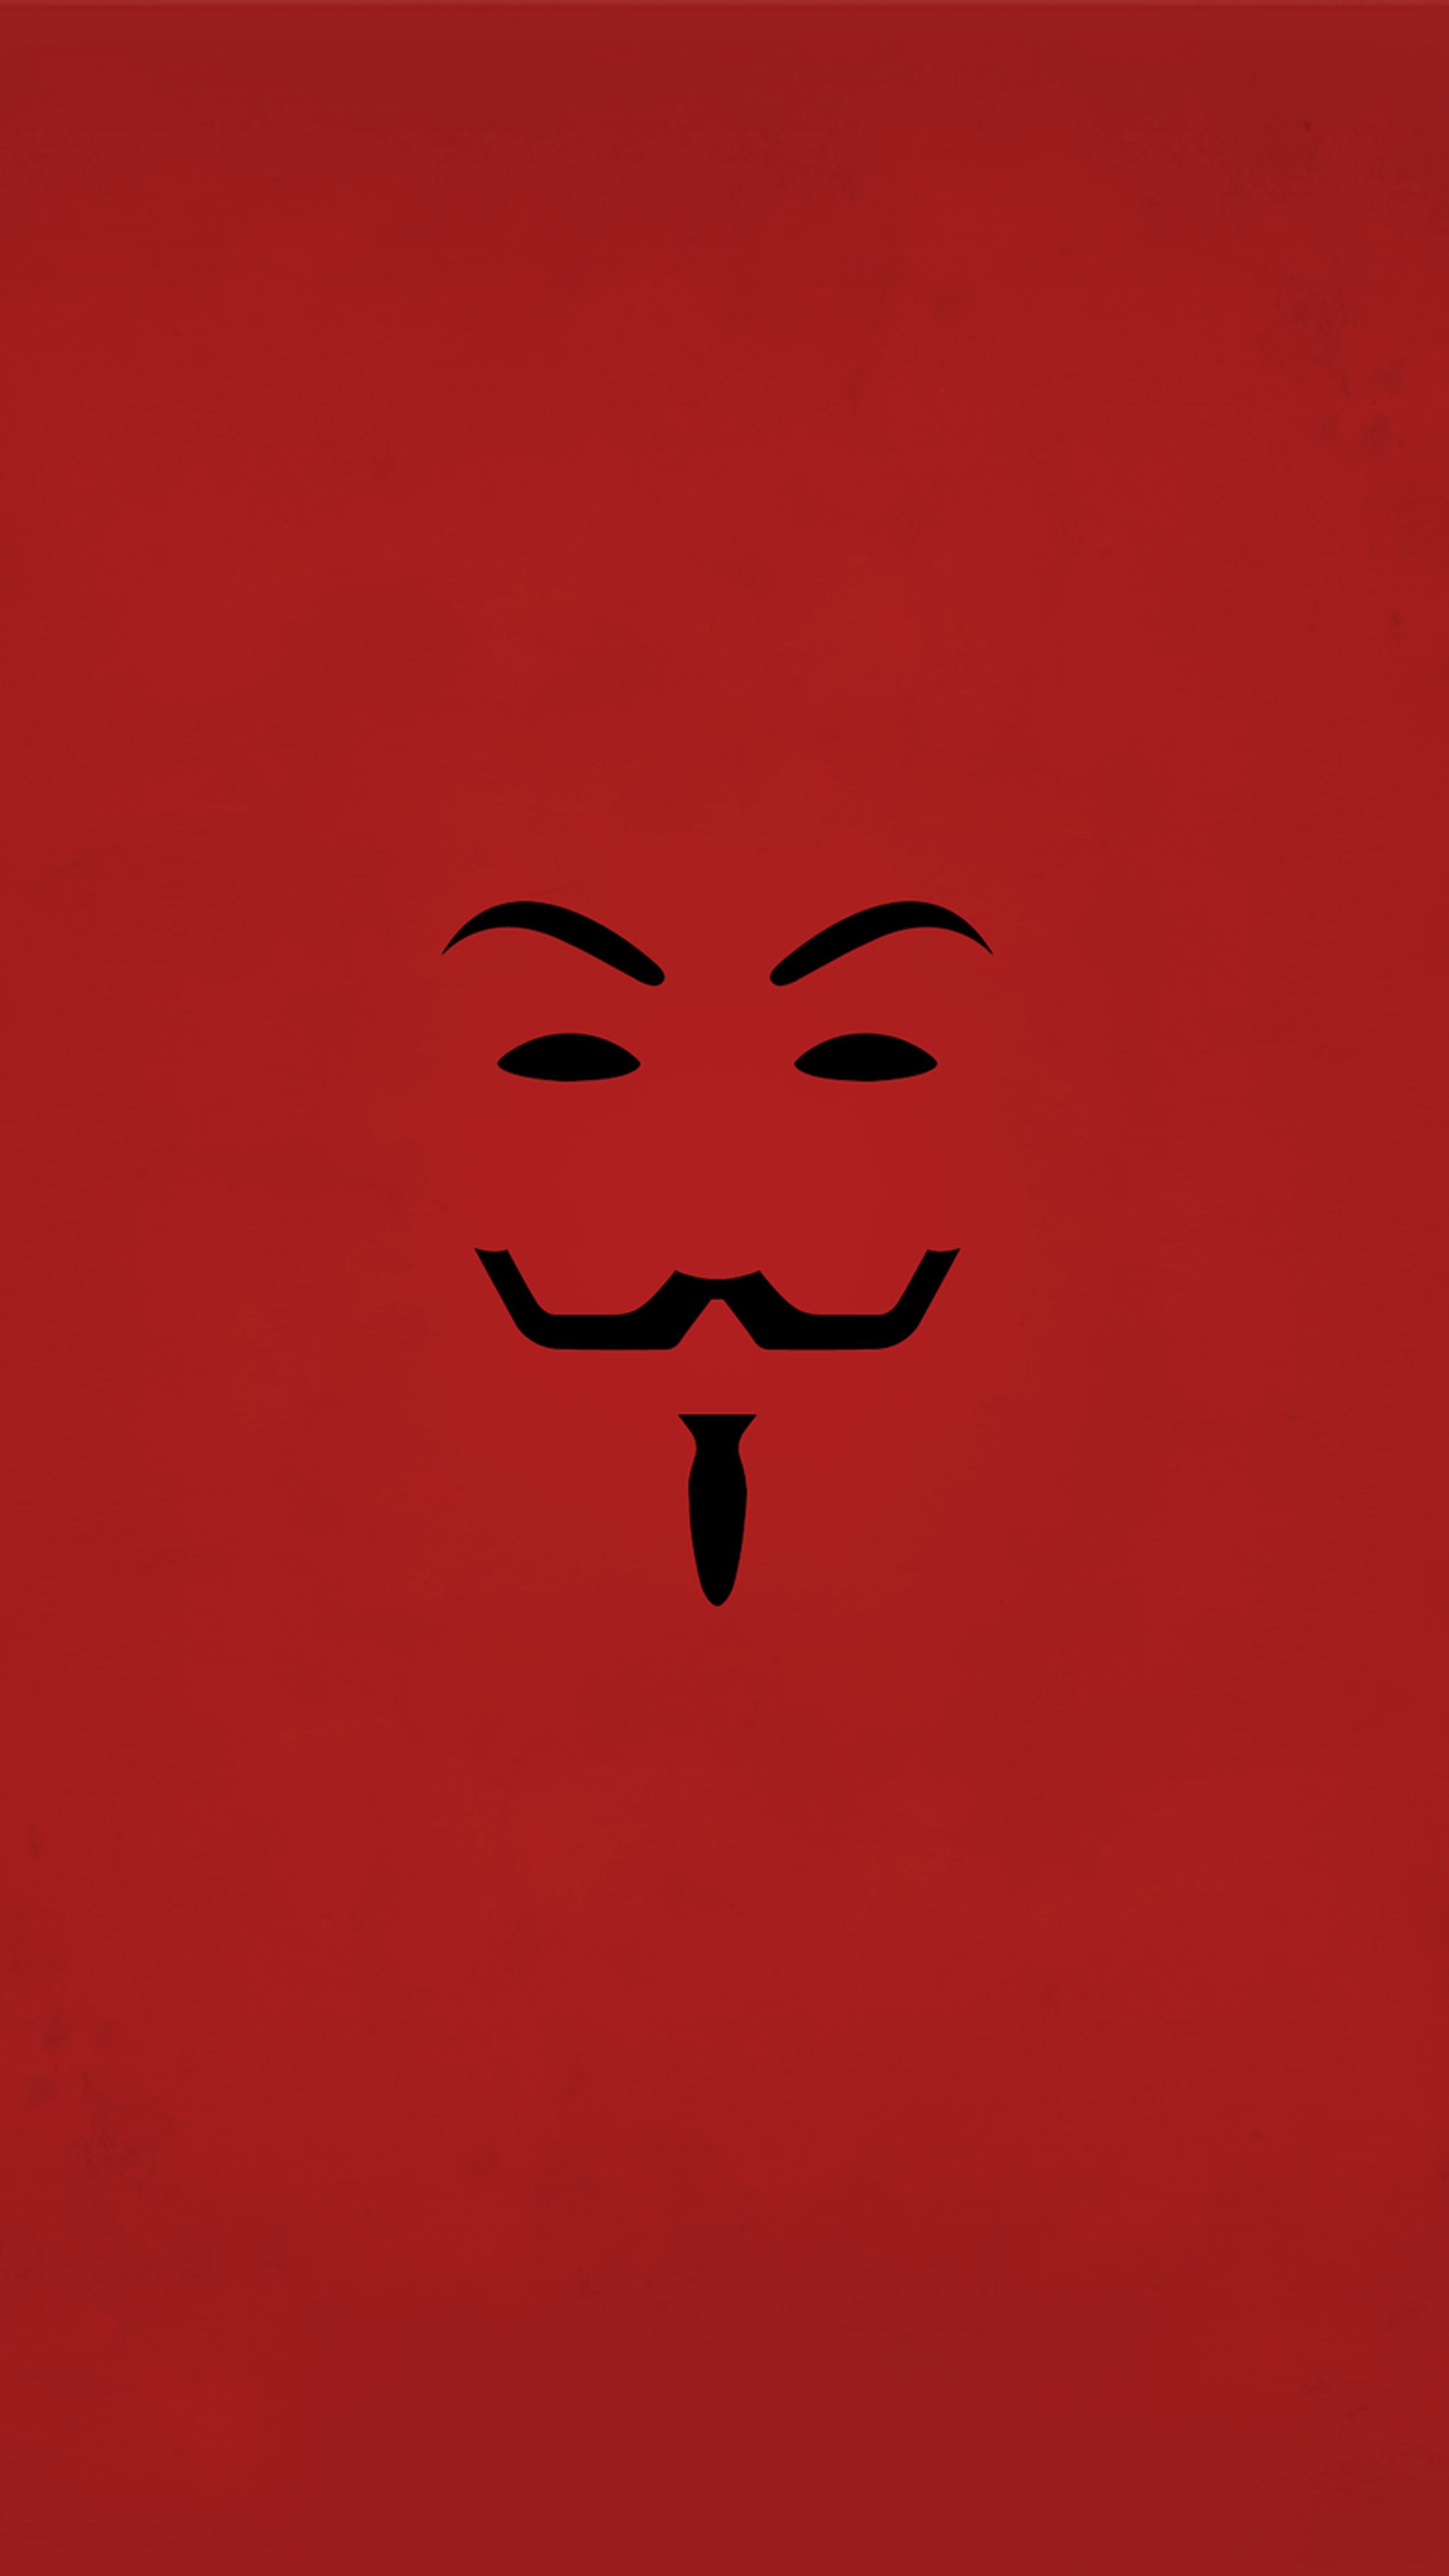 v for vendetta mobile wallpaper | miniwallist